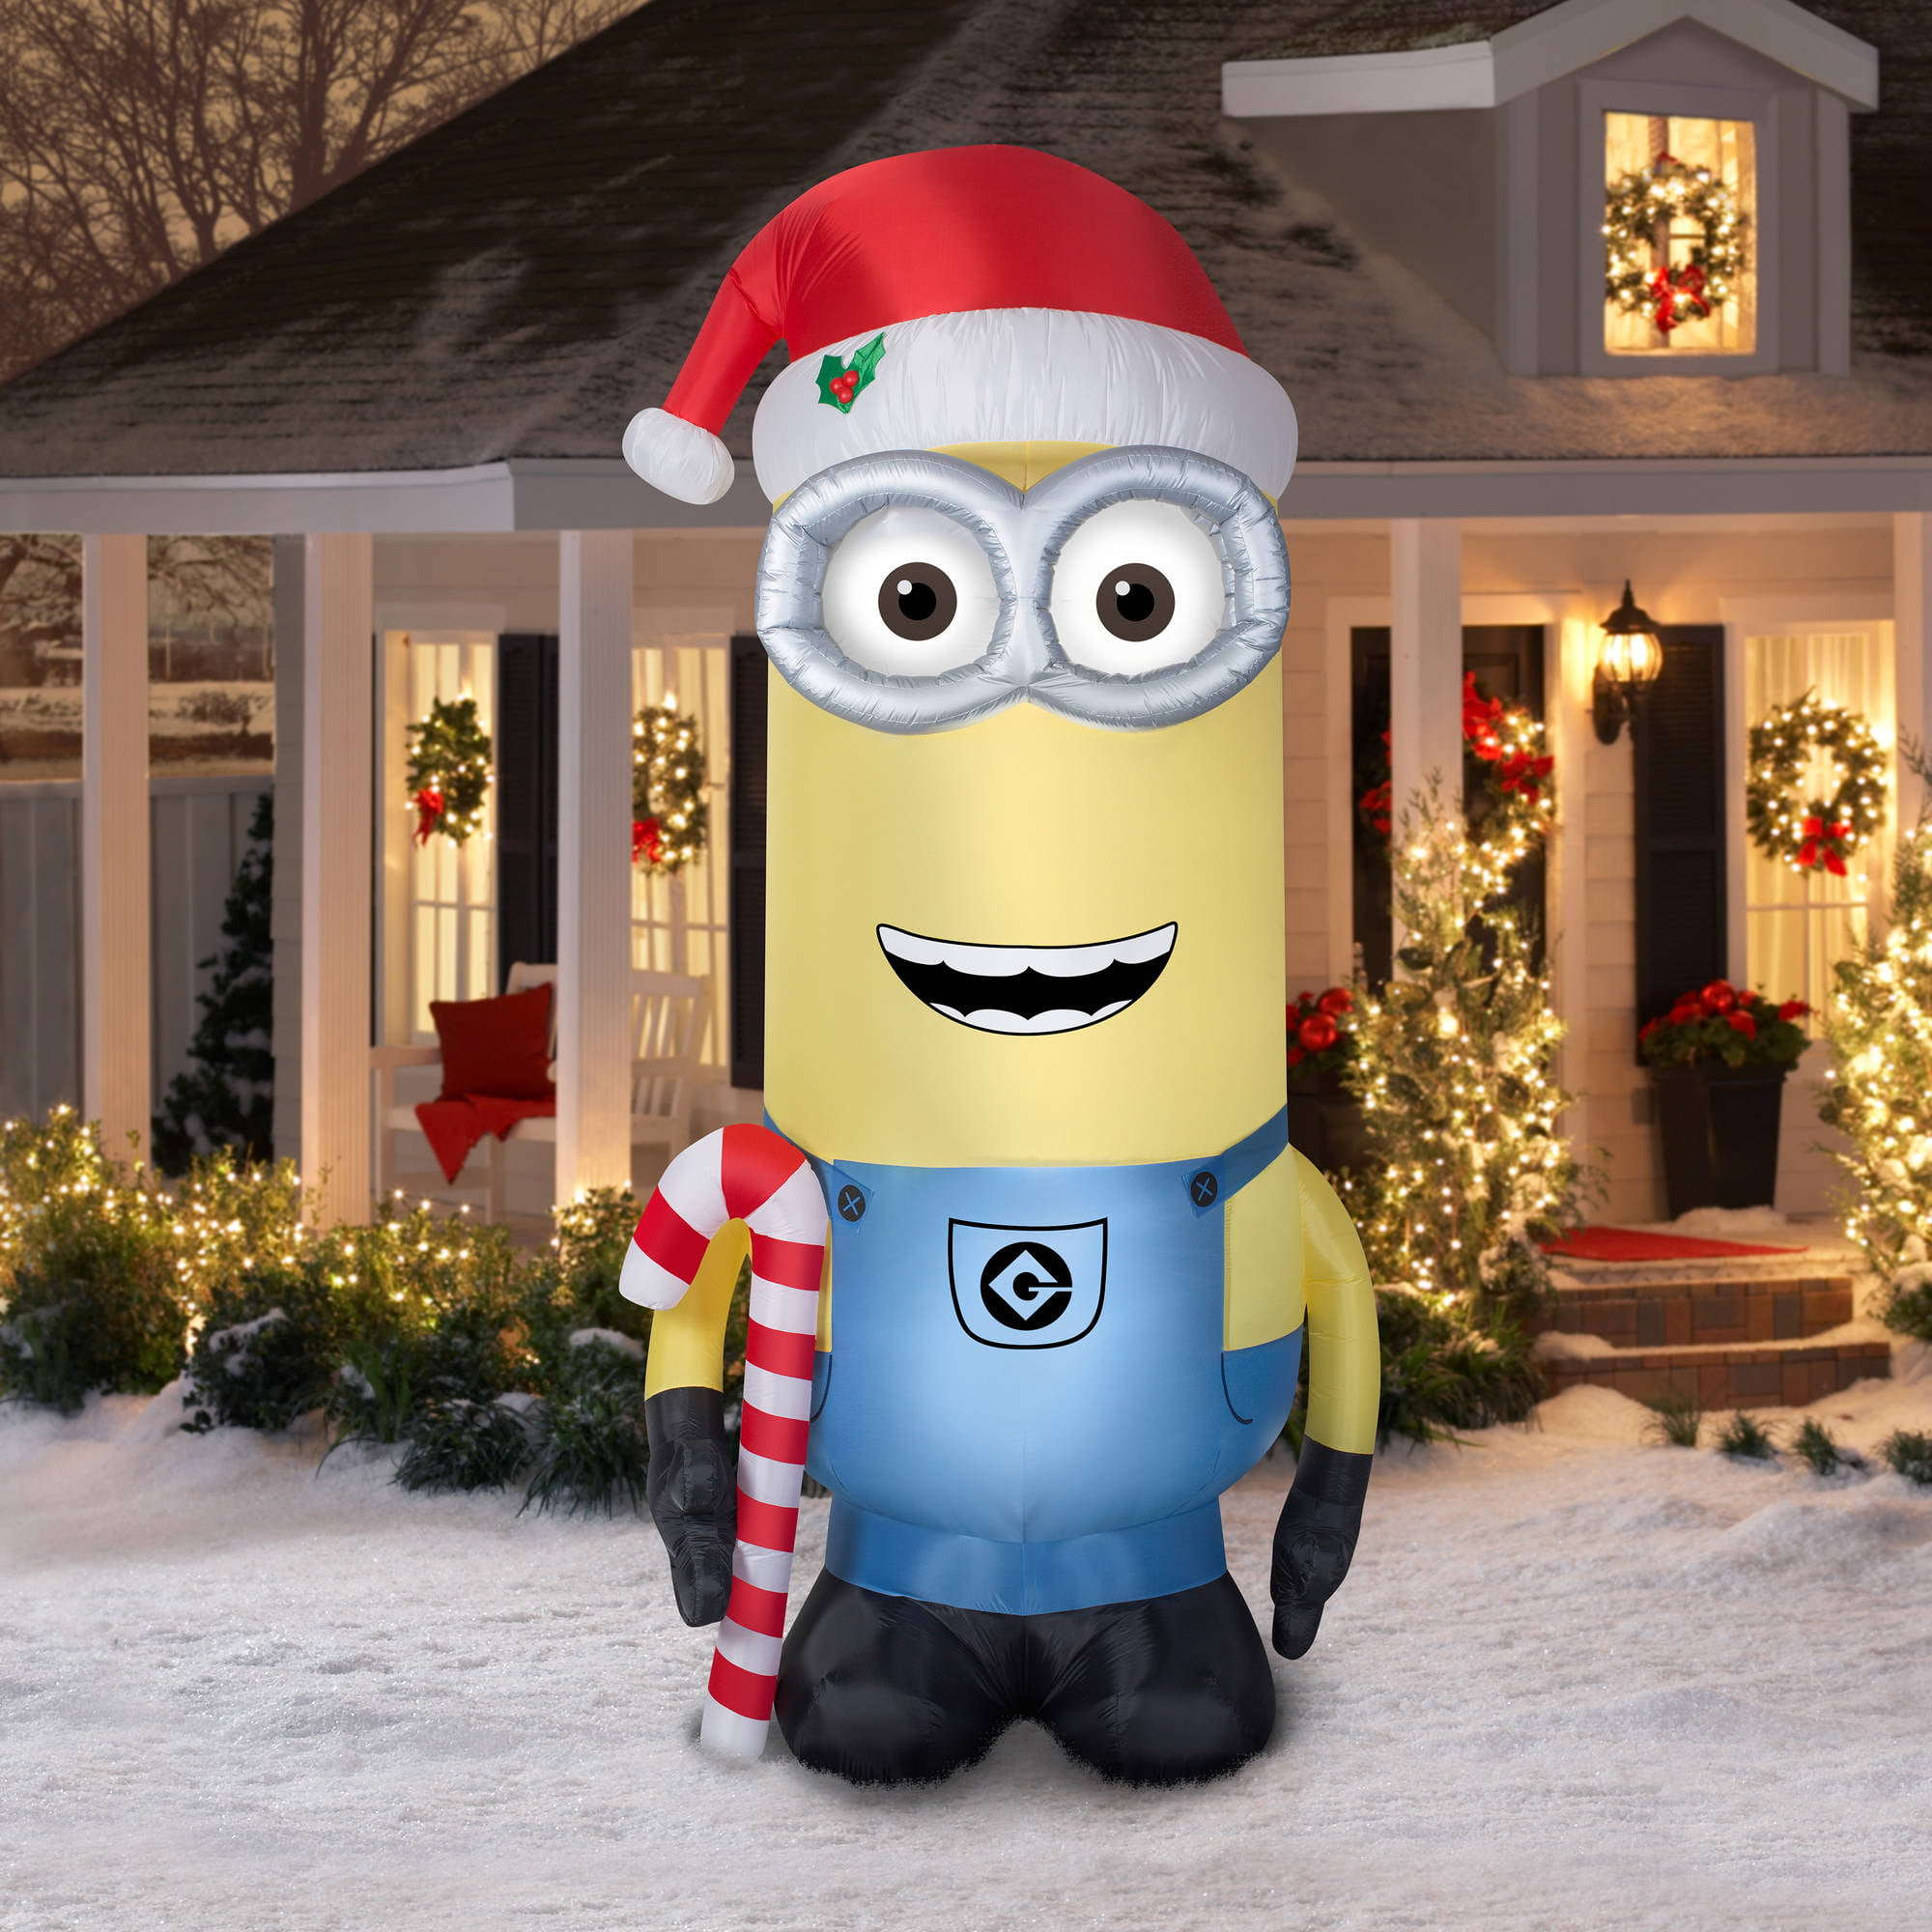 airblown inflatables 11 ft minion kevin with candy cane and santa hat walmartcom - Outdoor Christmas Inflatables